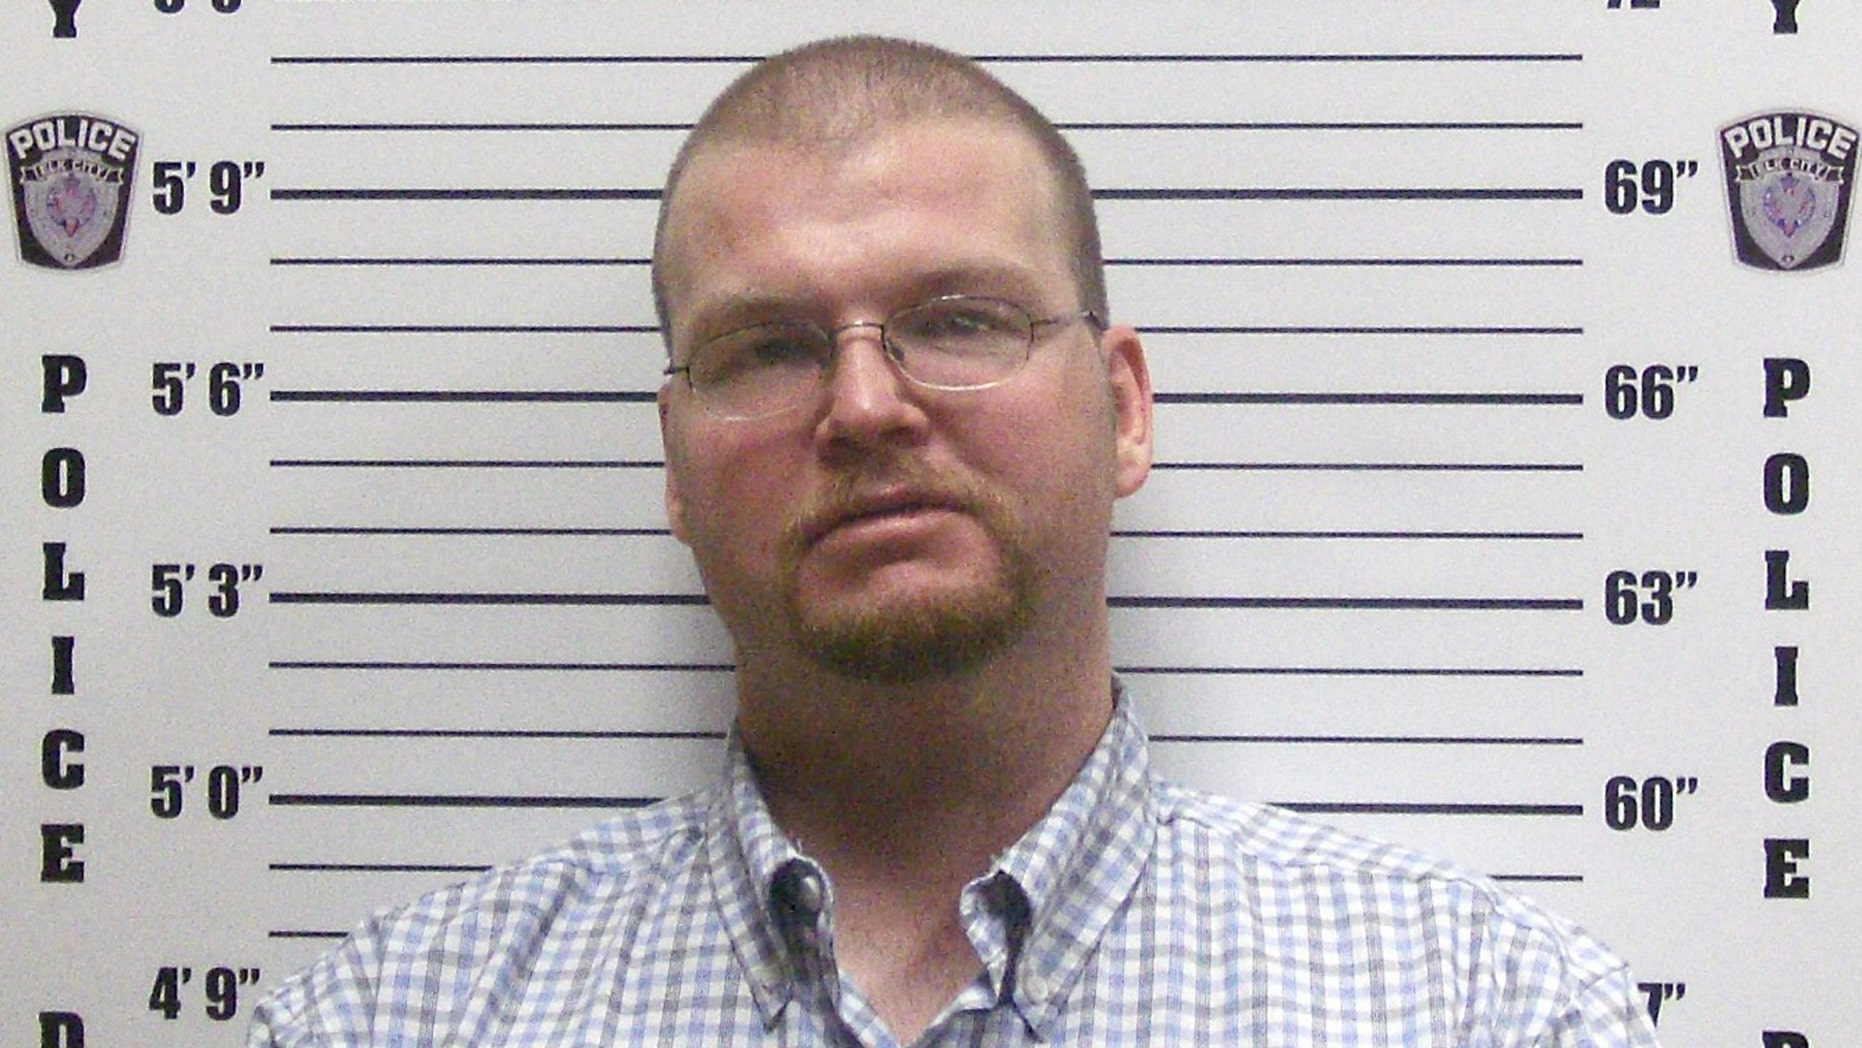 Justin Harrel in booking photo released by Elk City, Ok.